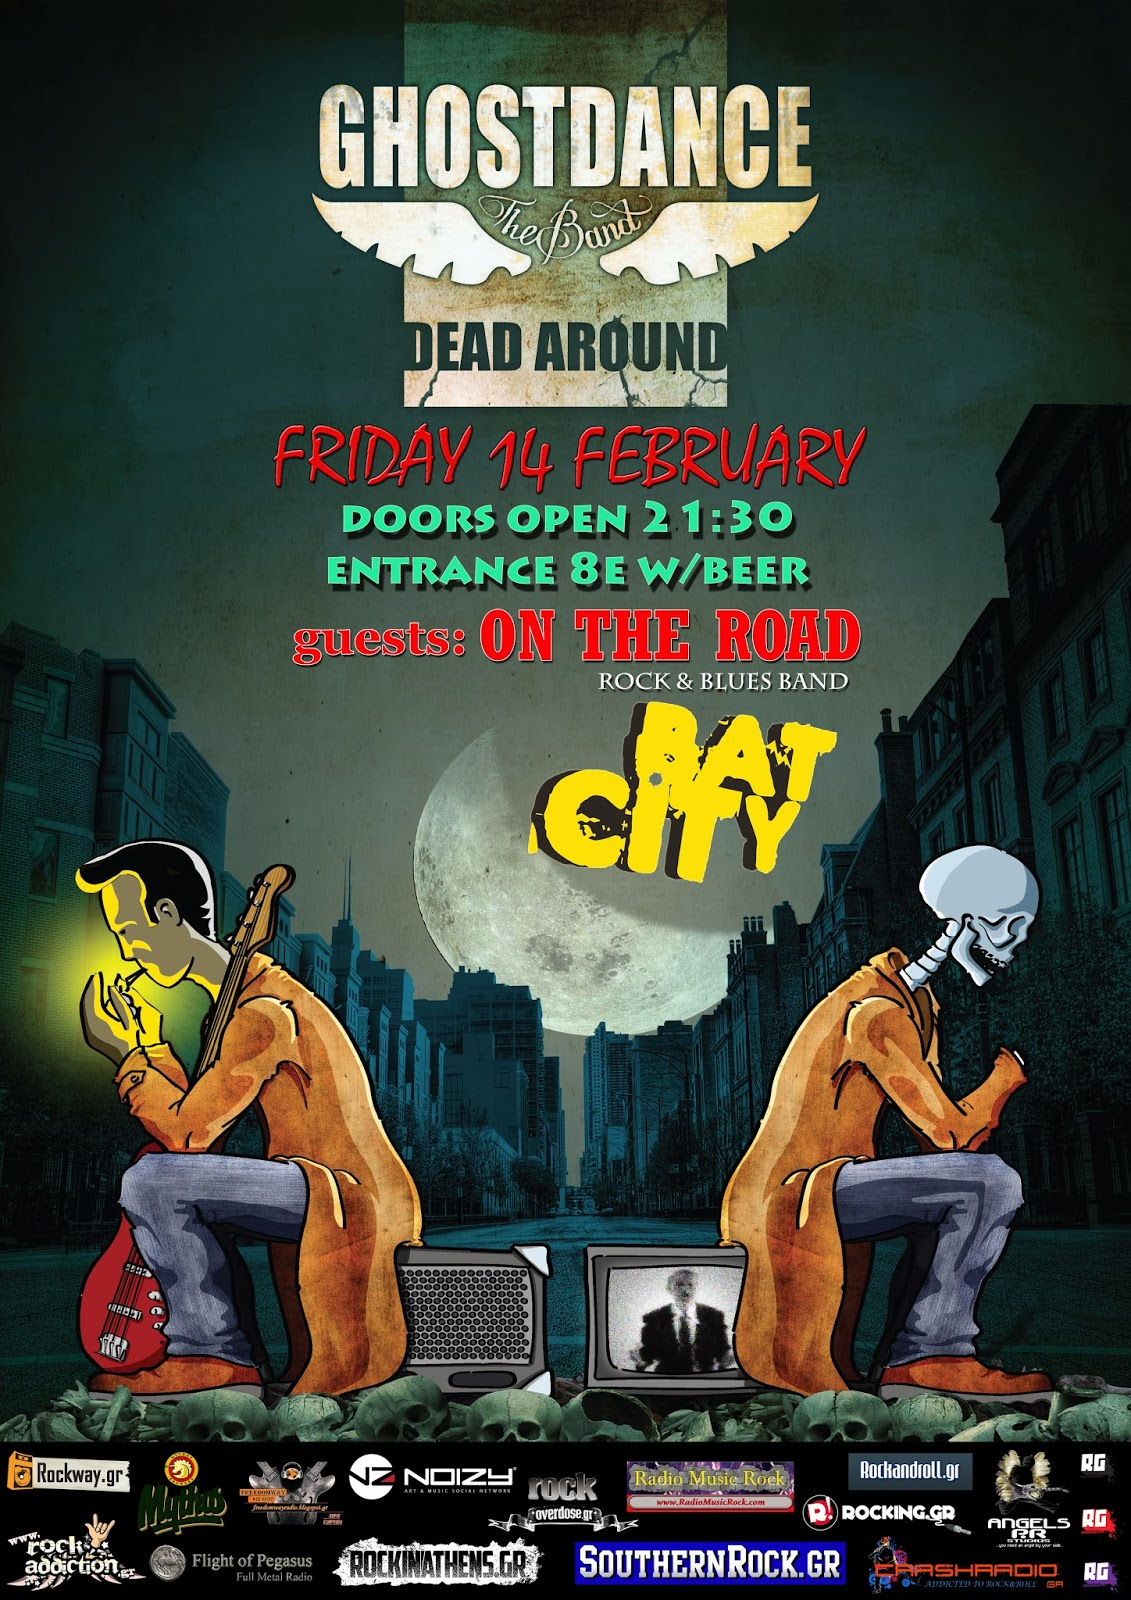 oi-ghostdance-the-band-bat-city-14-fevrouariou